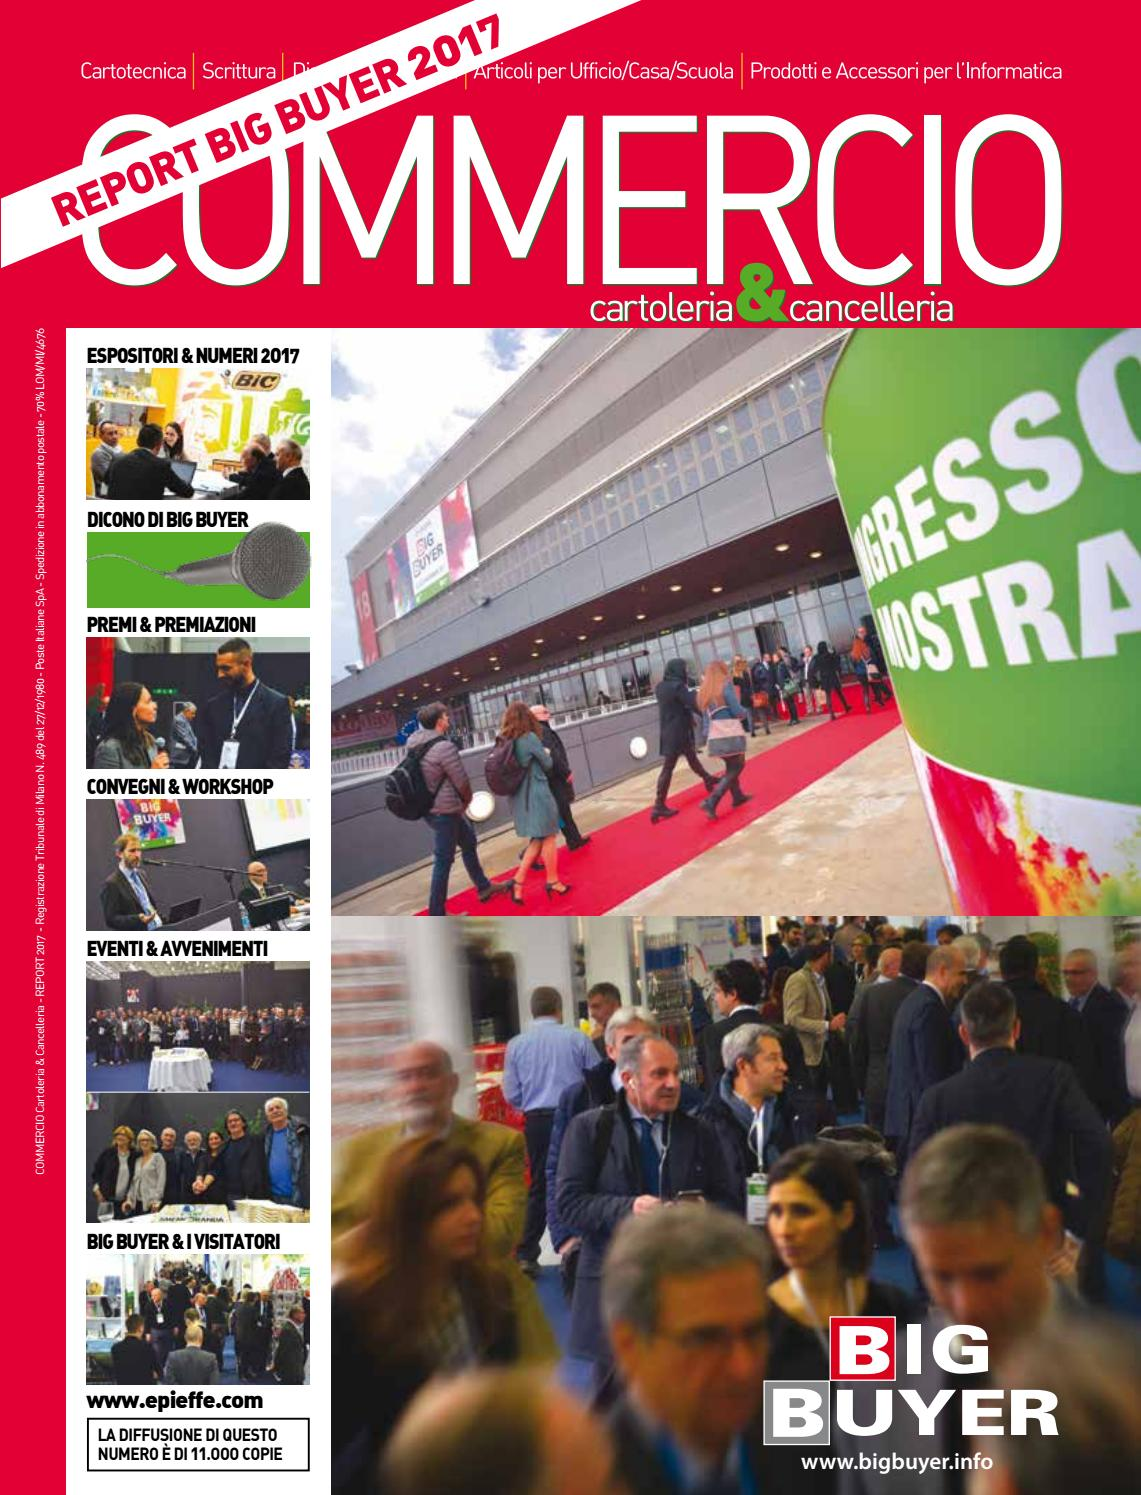 Report Big Buyer 2017 by COMMERCIO Cartoleria   Cancelleria - issuu 9d3128f8731